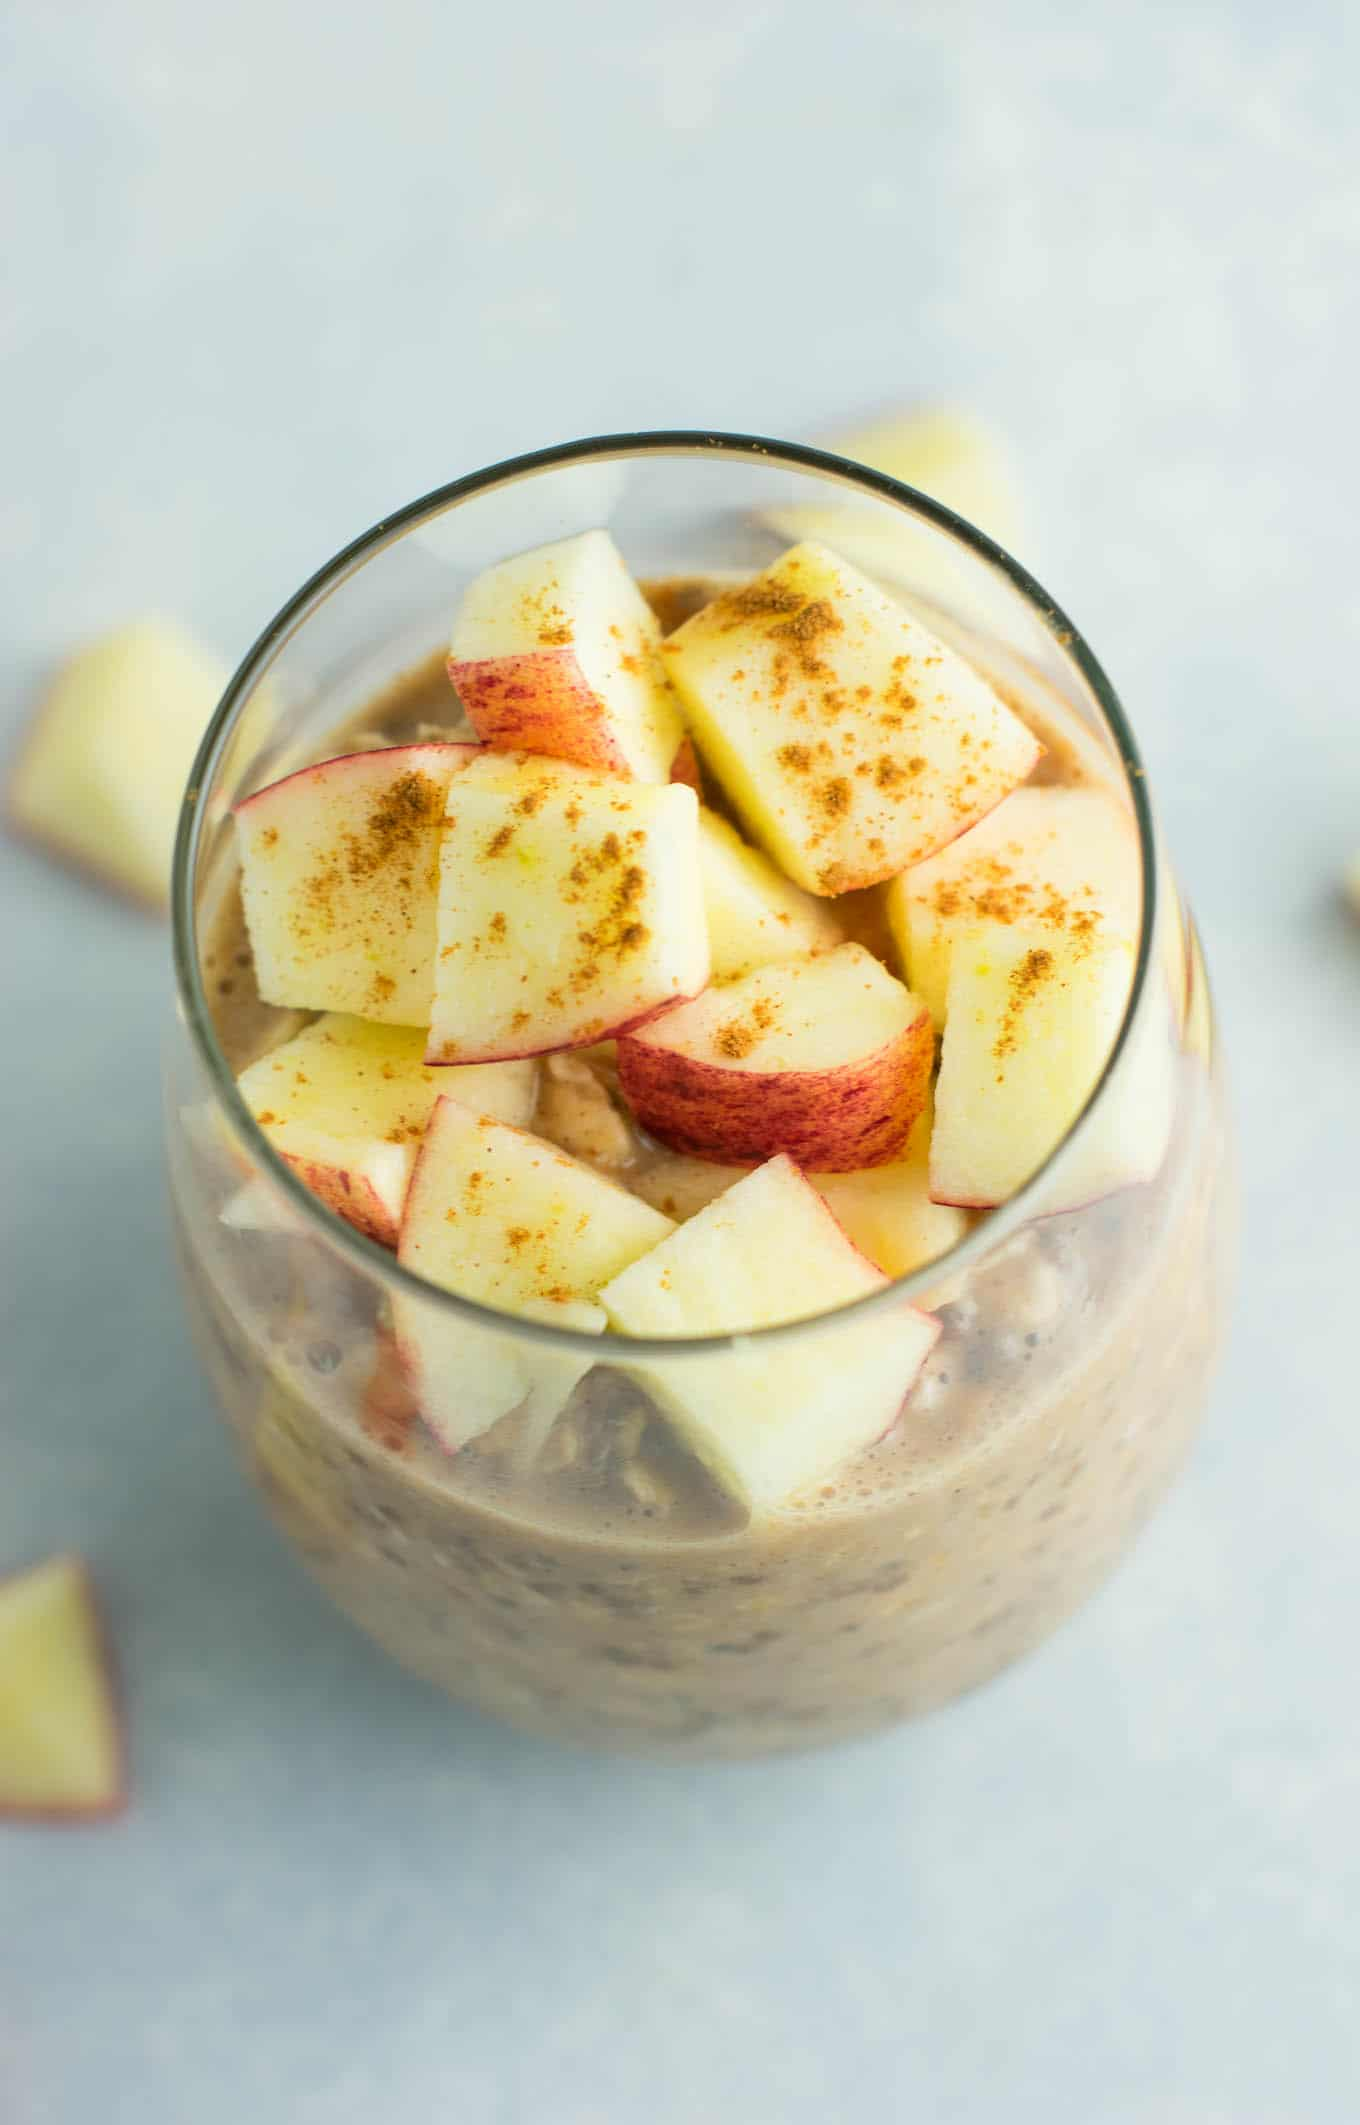 overnight oats in a glass topped with chopped apples and cinnamon